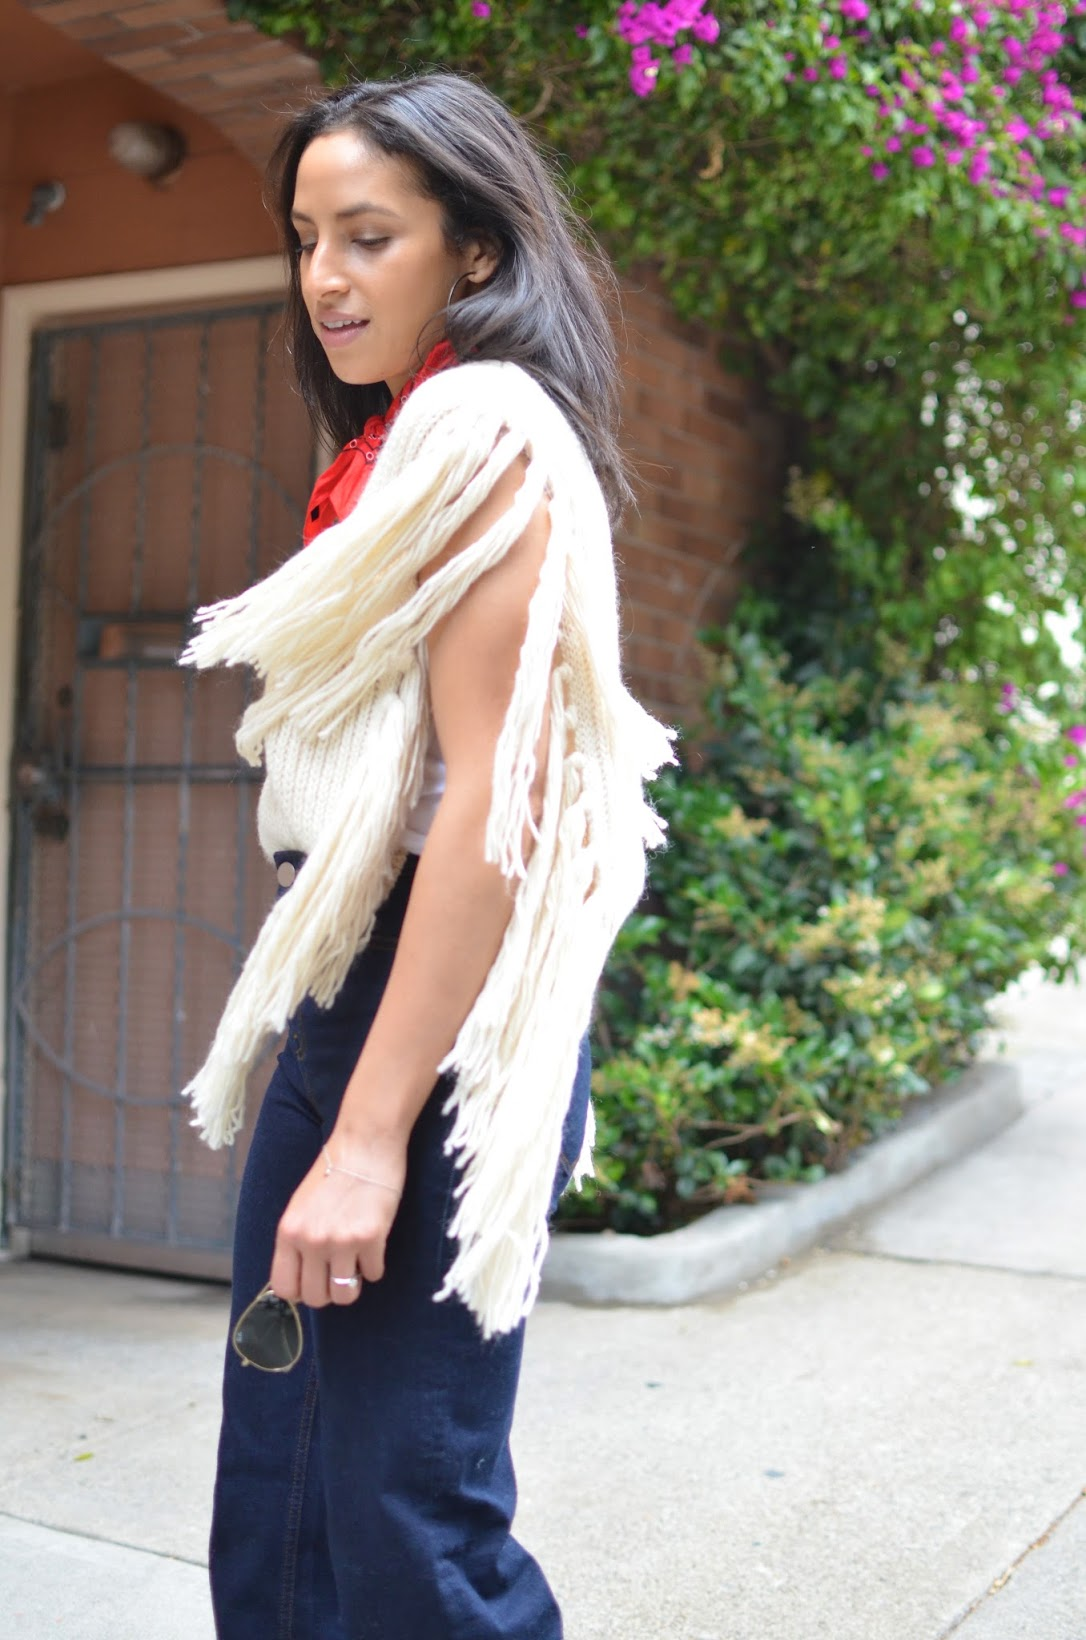 70's style, fringe sweater, fringe, red bandana, high-waisted denim, ASOS, high-waisted flares, 70's style icon, Jane Birken, Three's Company, Joyce DeWitt